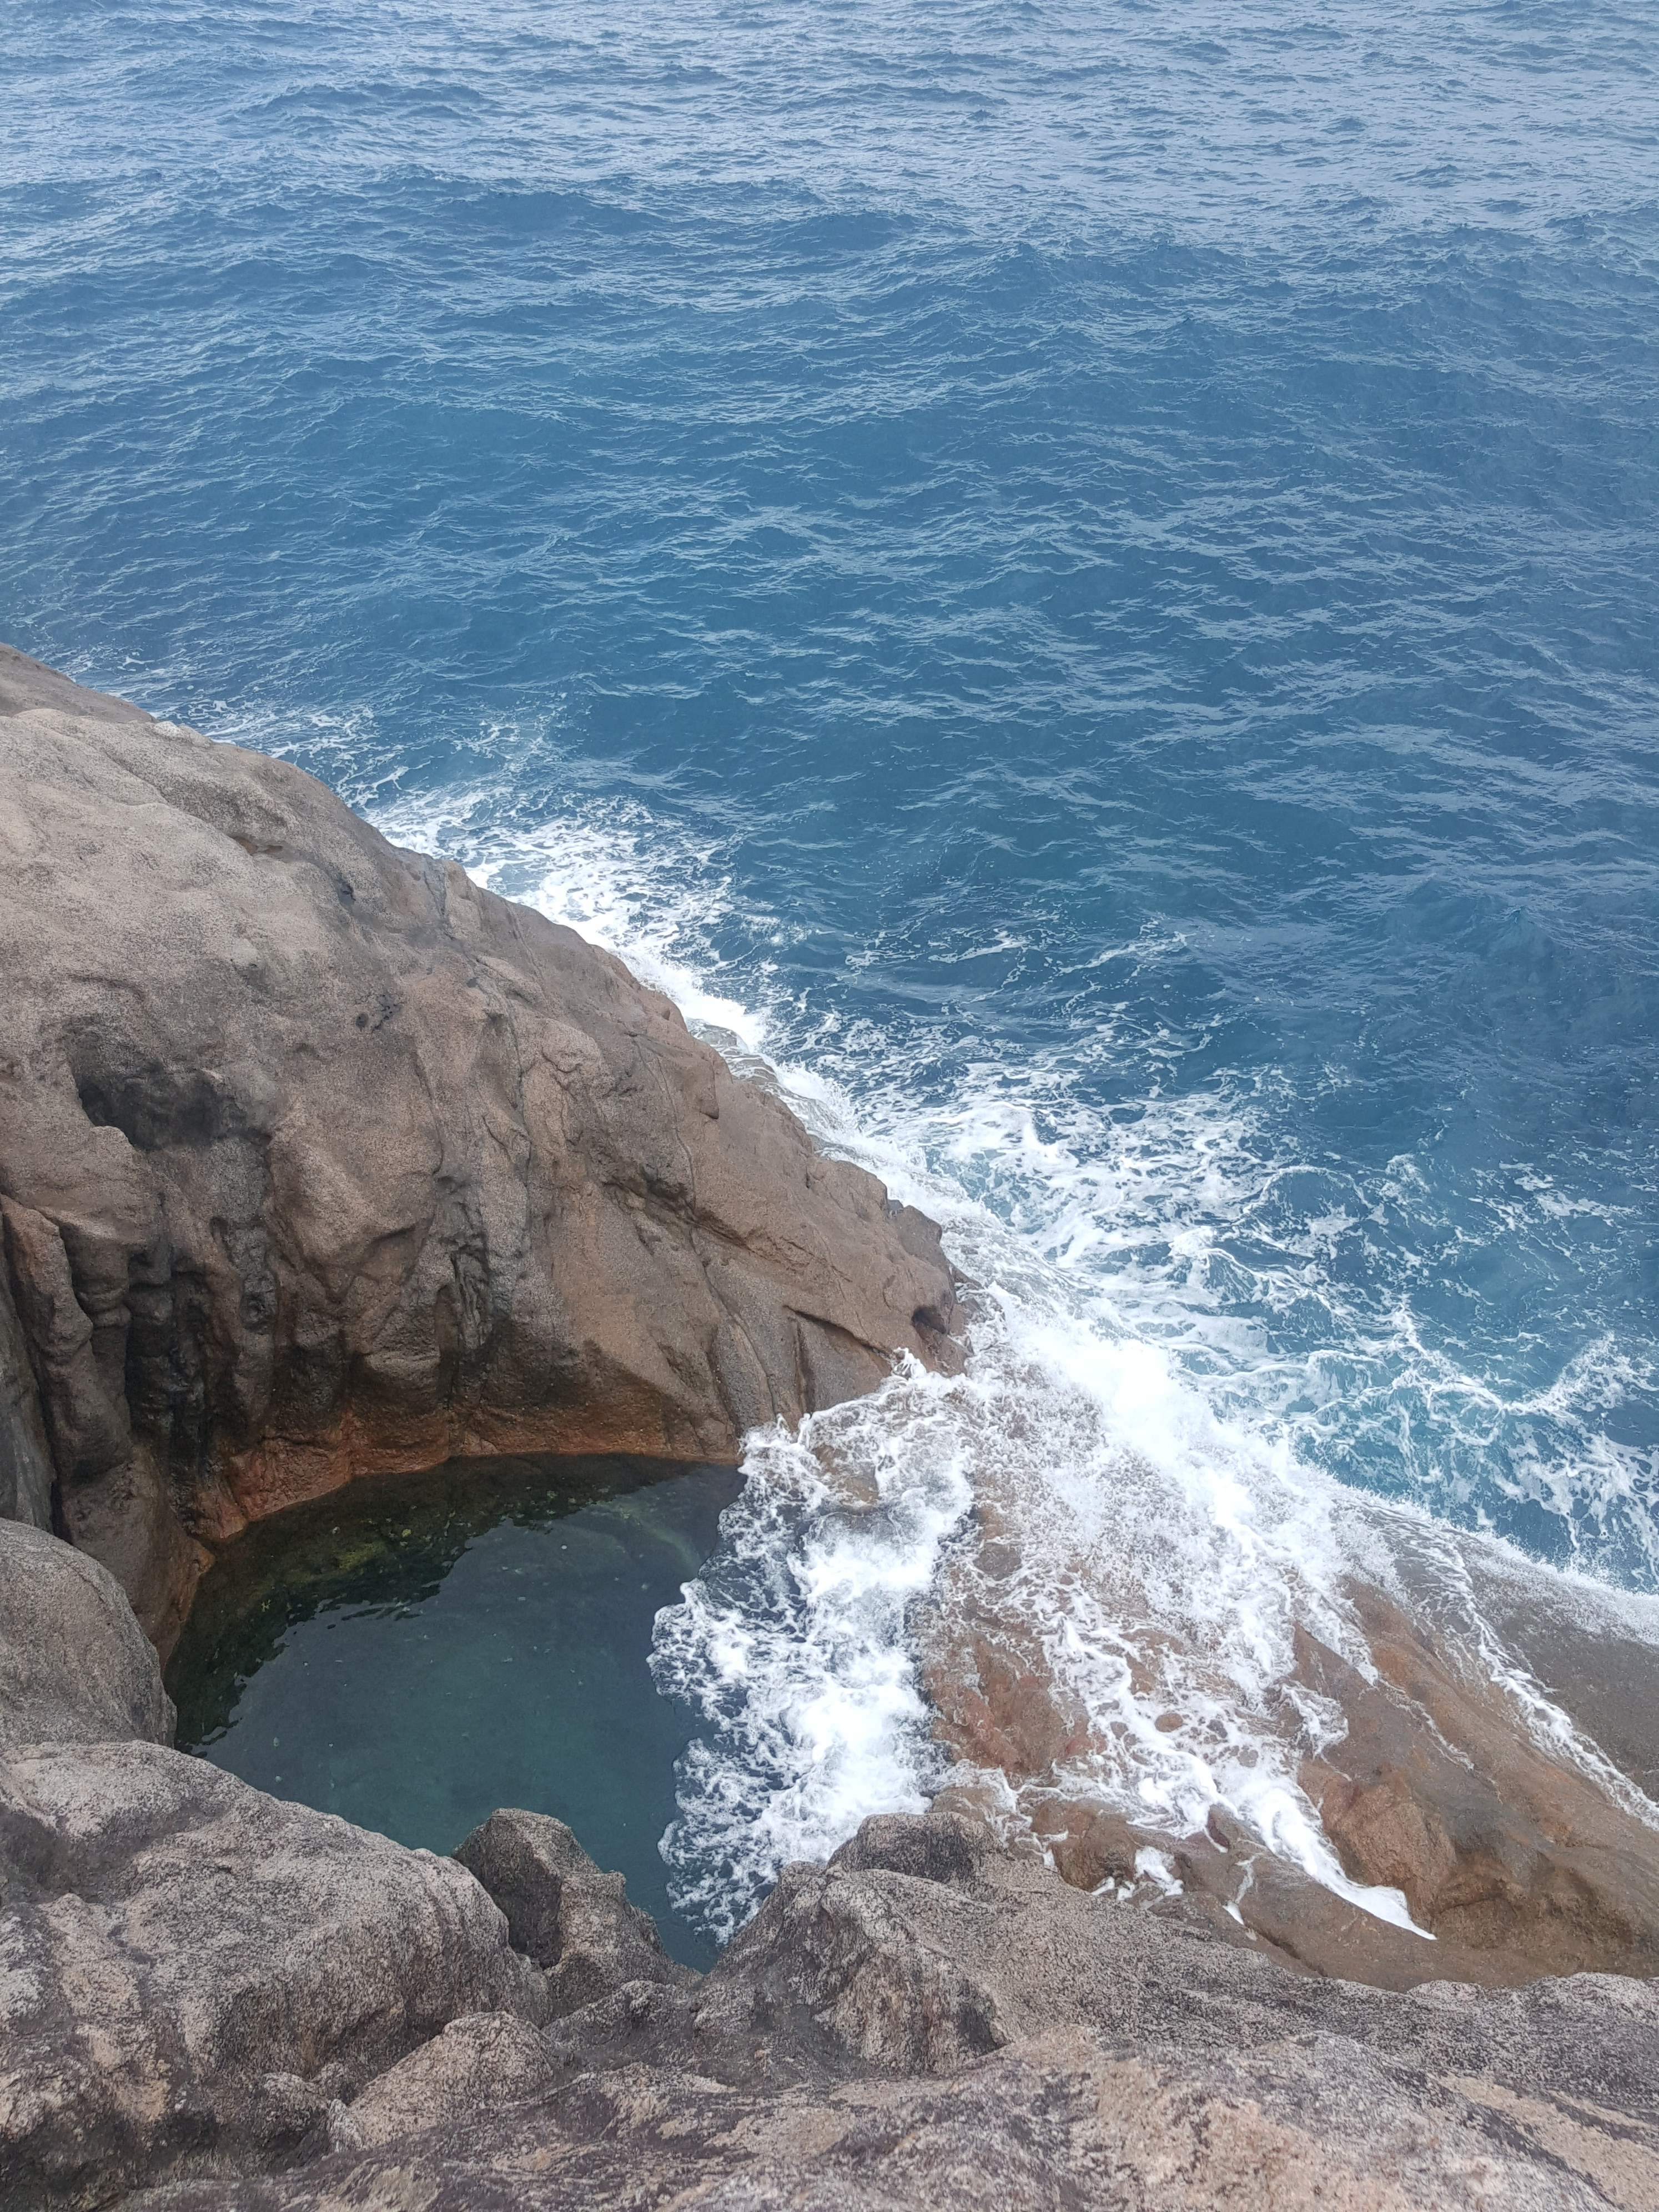 The Ros sozyer known as Rock Pool